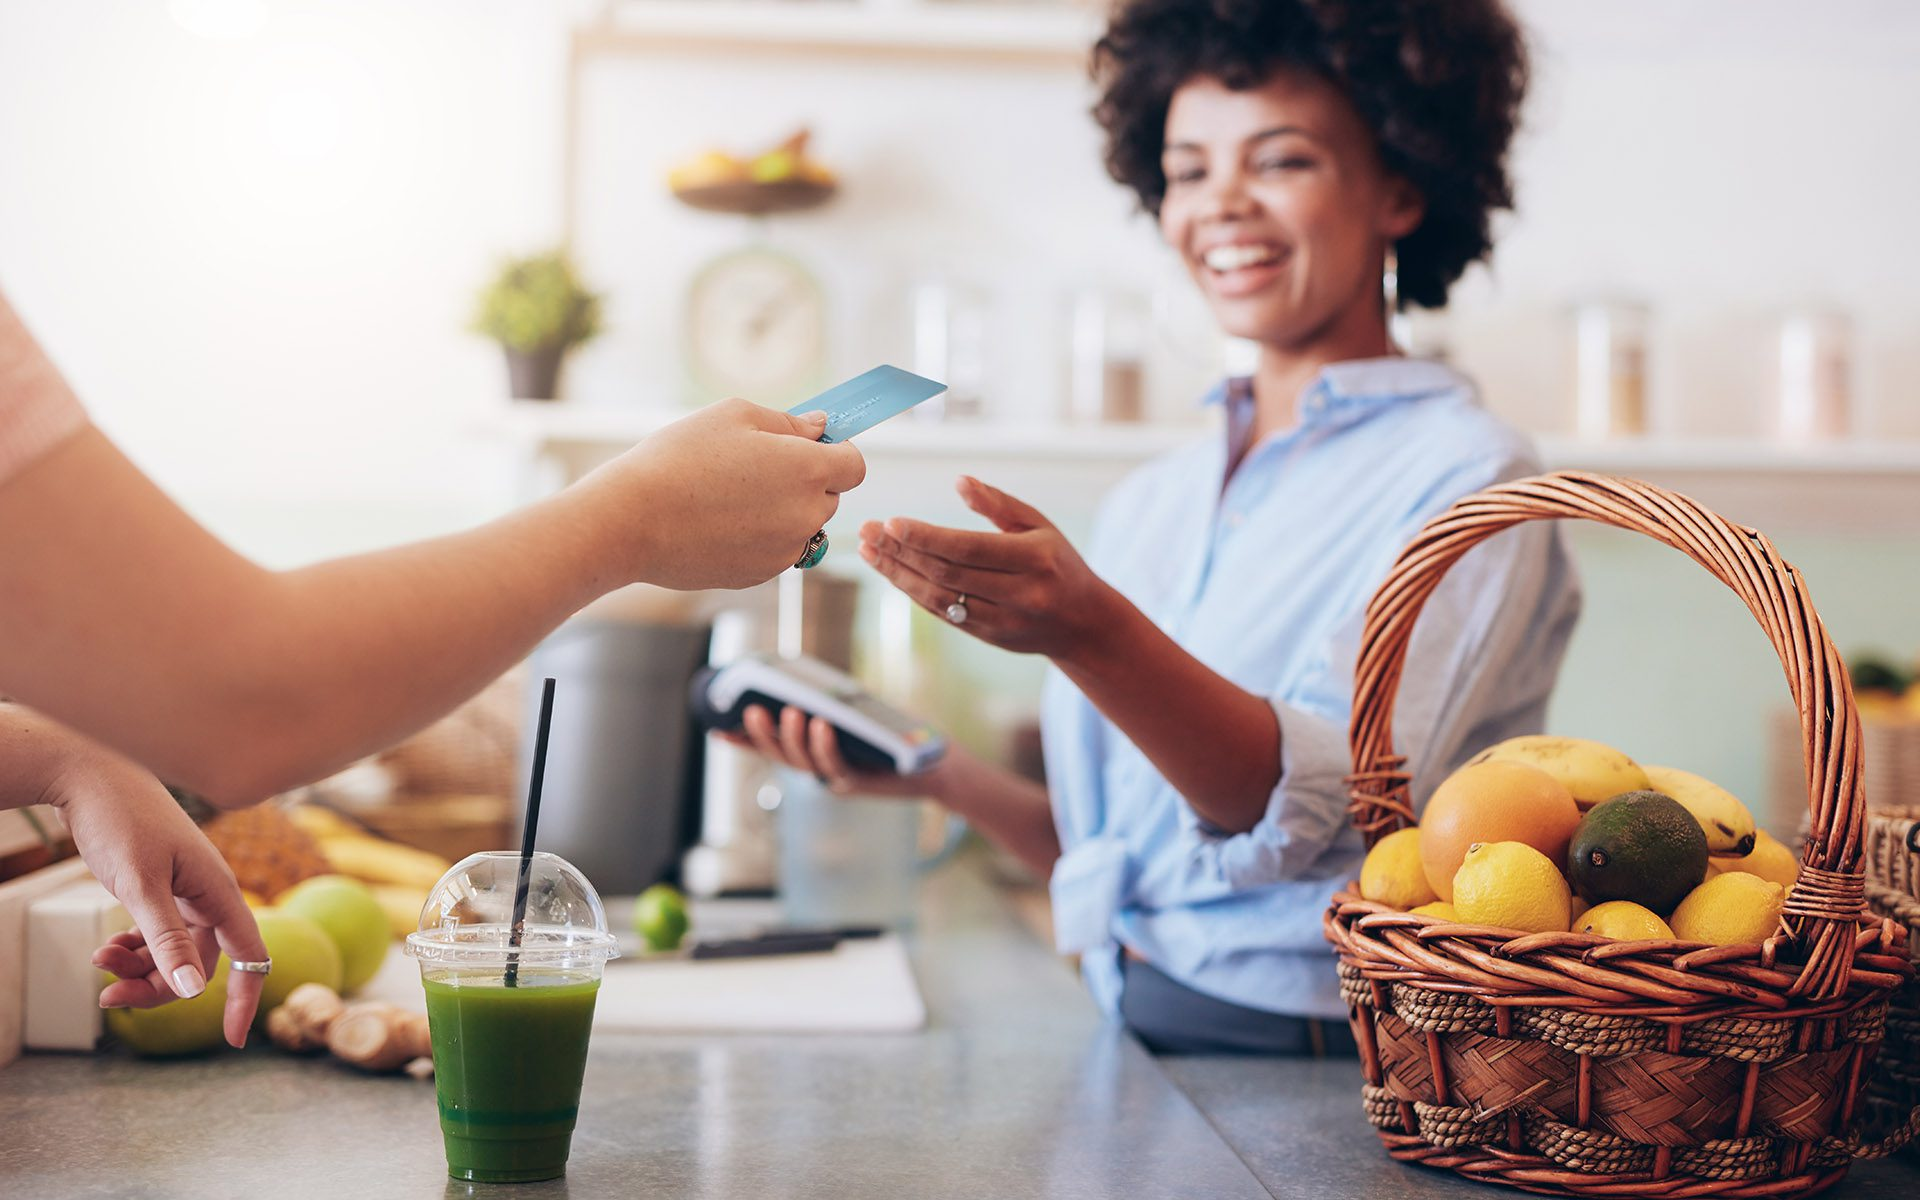 Landing Page #2 - Woman Exchanging Money at the Counter for a Smoothie